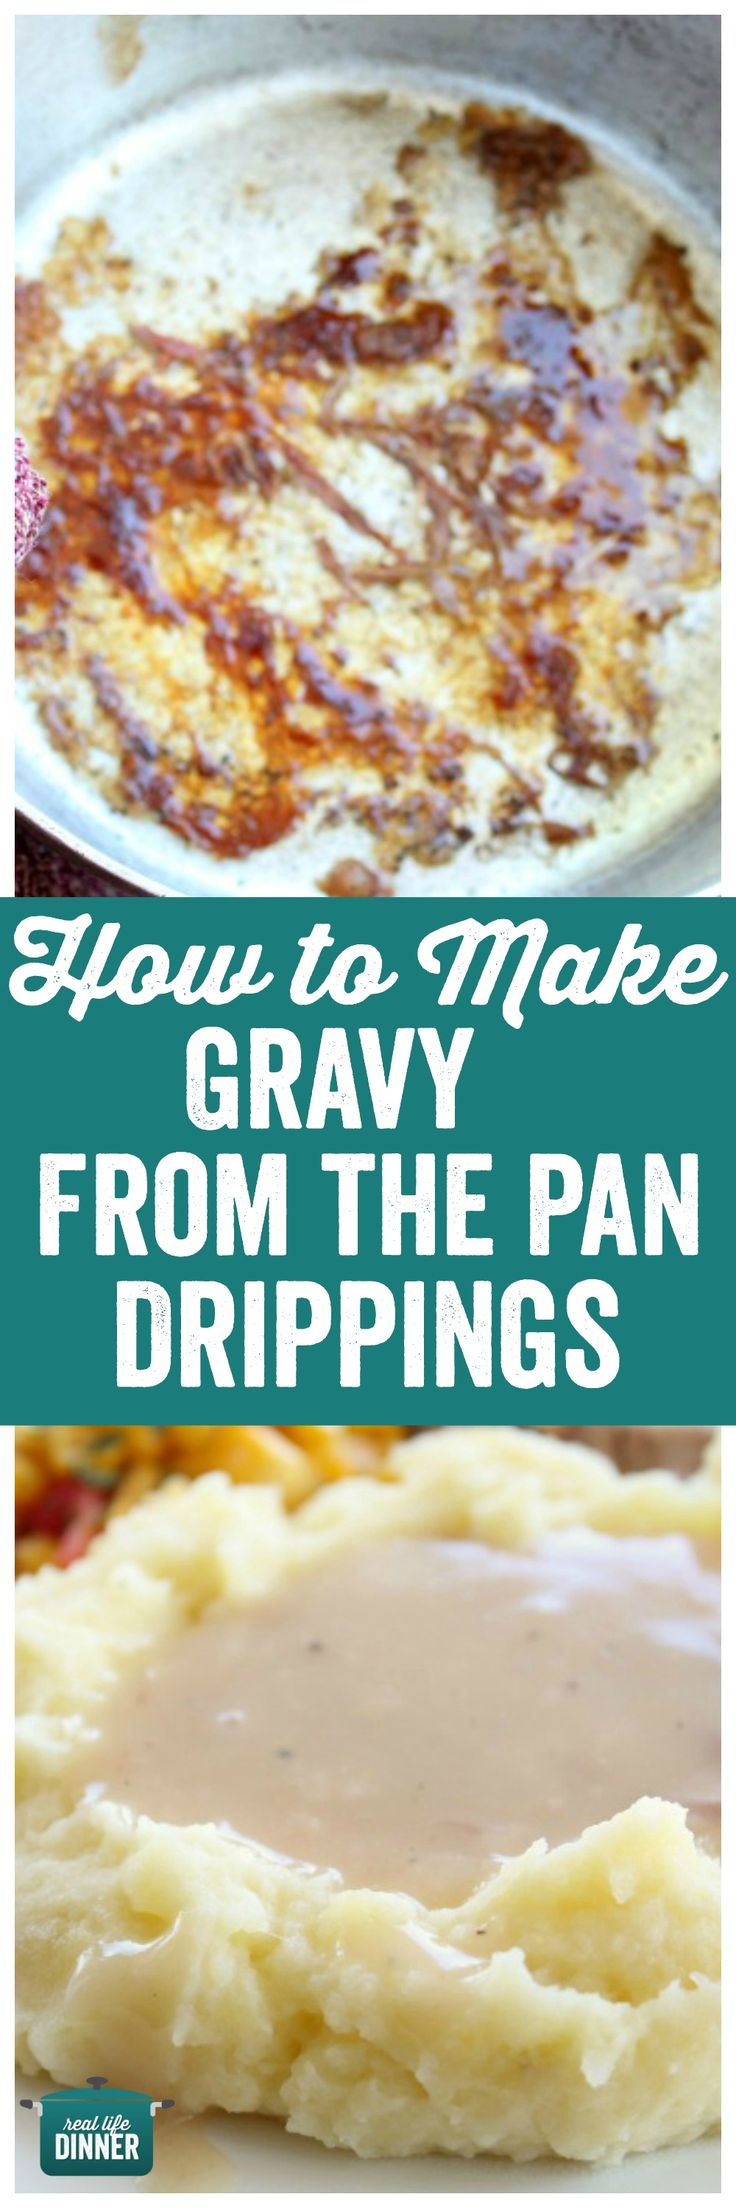 Best 25 making gravy ideas on pinterest thanksgiving for How to make beef gravy from drippings